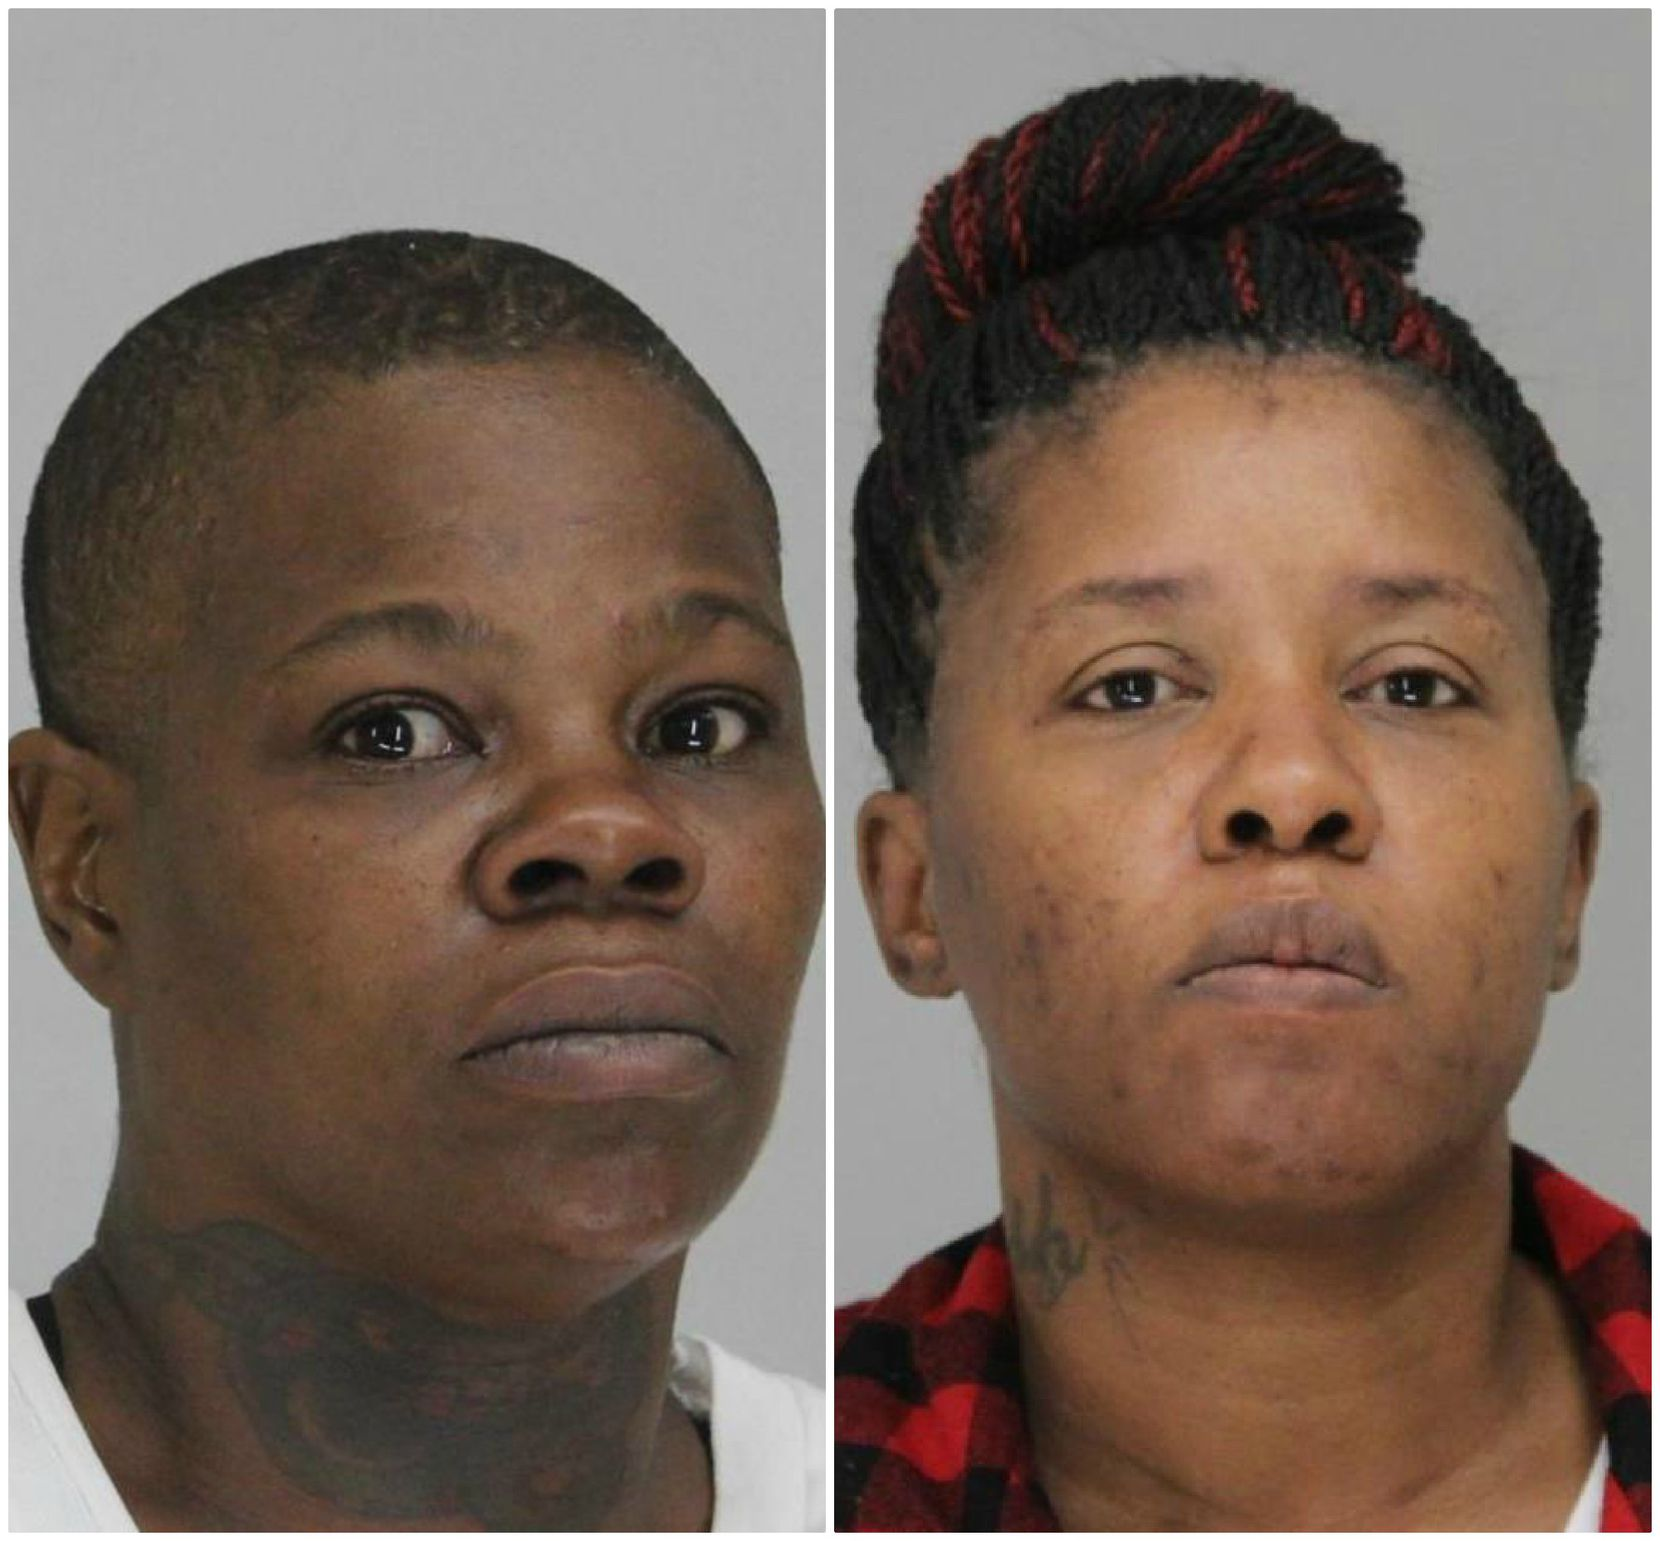 Toni Renee Caldwell (left) and Rhonda Cheryl Harper face charges of burglary of a building, a North Dallas home destroyed in last month's tornado.